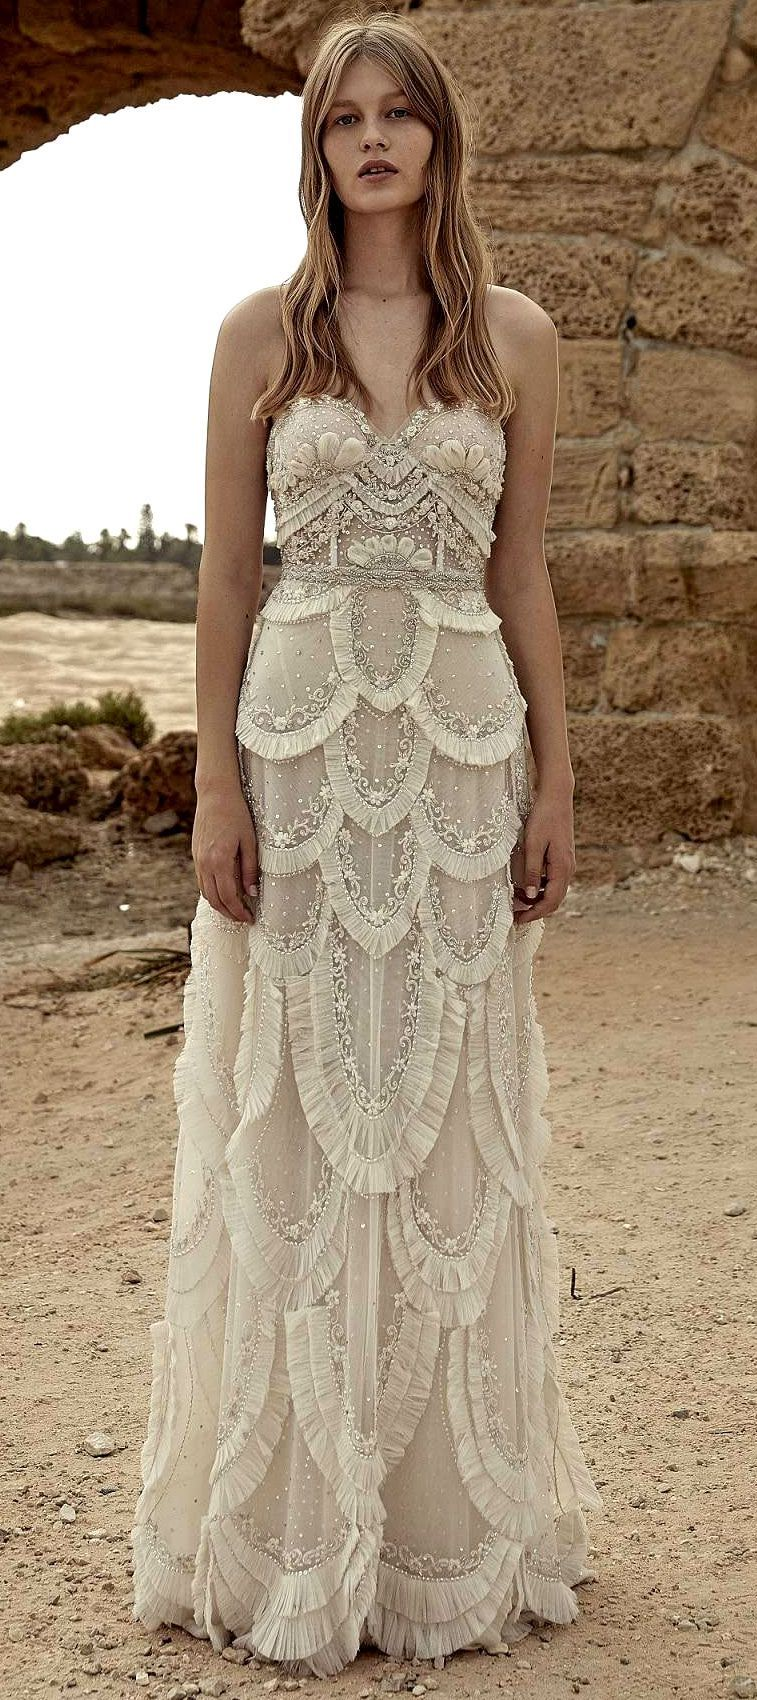 Best Wedding Dresses to Swoon Over